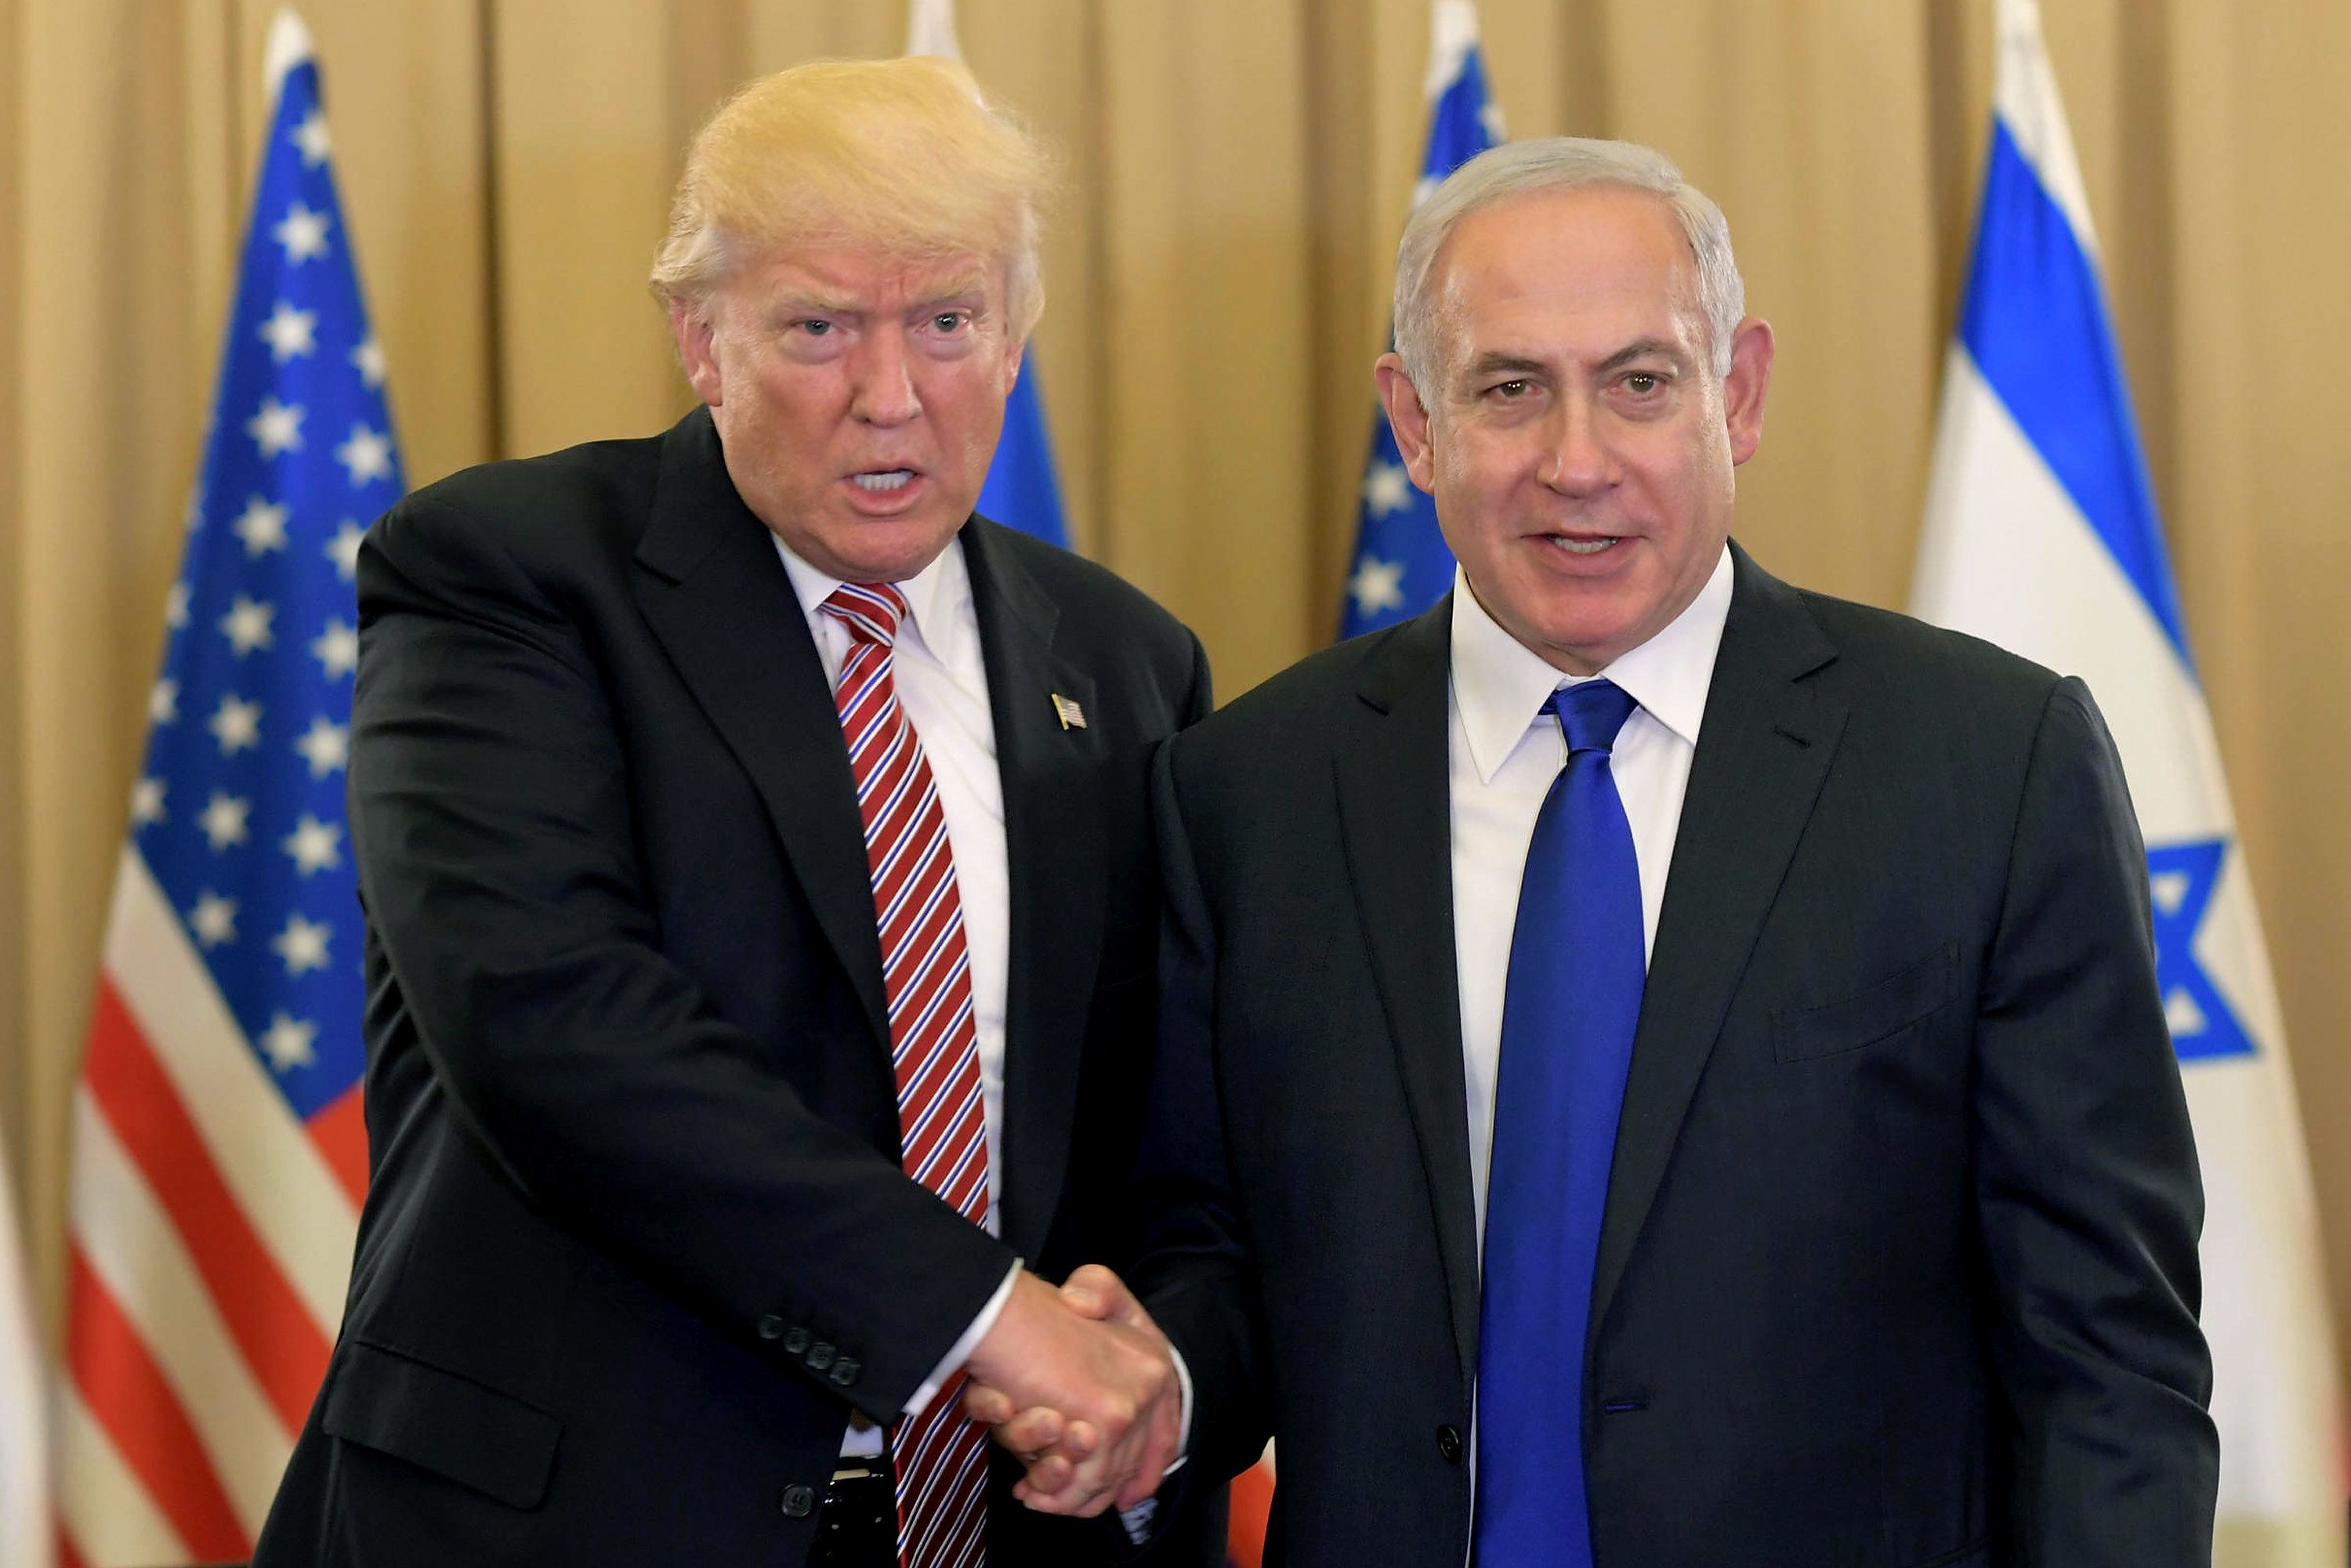 JERUSALEM, ISRAEL - MAY 22:  (ISRAEL OUT) In this handout photo provided by the Israel Government Press Office (GPO), US President Donald J Trump (L) meets with Israel Prime Minister Benjamin Netanyahu at the King David Hotel May 22, 2017 in Jerusalem, Israel. Trump arrived for a 28-hour visit to Israel and the Palestinian Authority areas on his first foreign trip since taking office in January.  (Photo by Amos Ben Gershom/GPO via Getty Images)